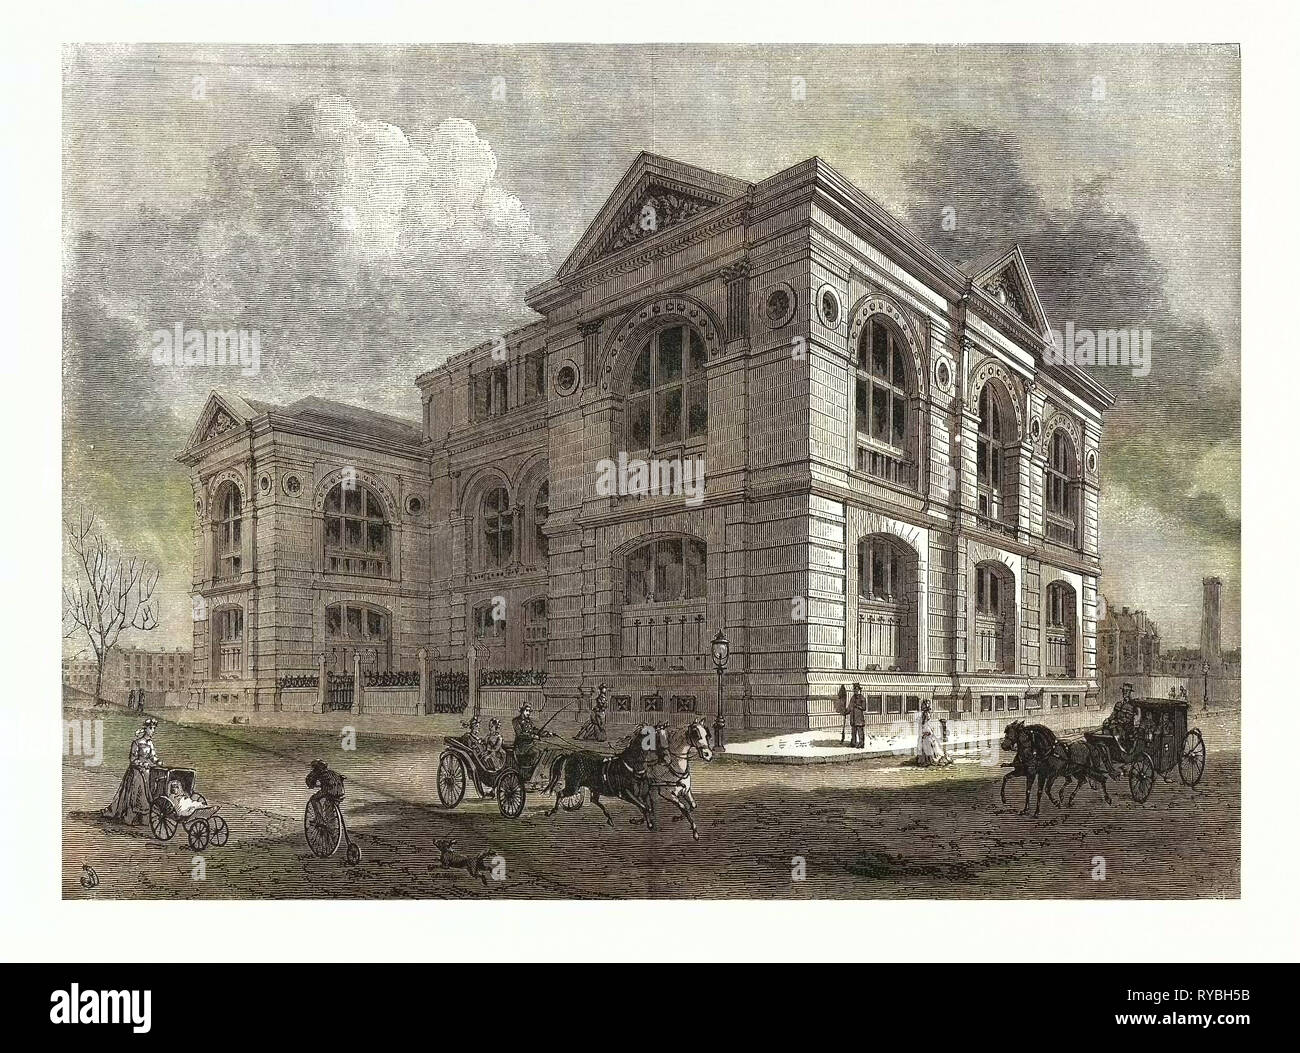 The Lenox Library, Fifth Avenue, New York City. US, USA, America, United States, American, Engraving 1880 - Stock Image